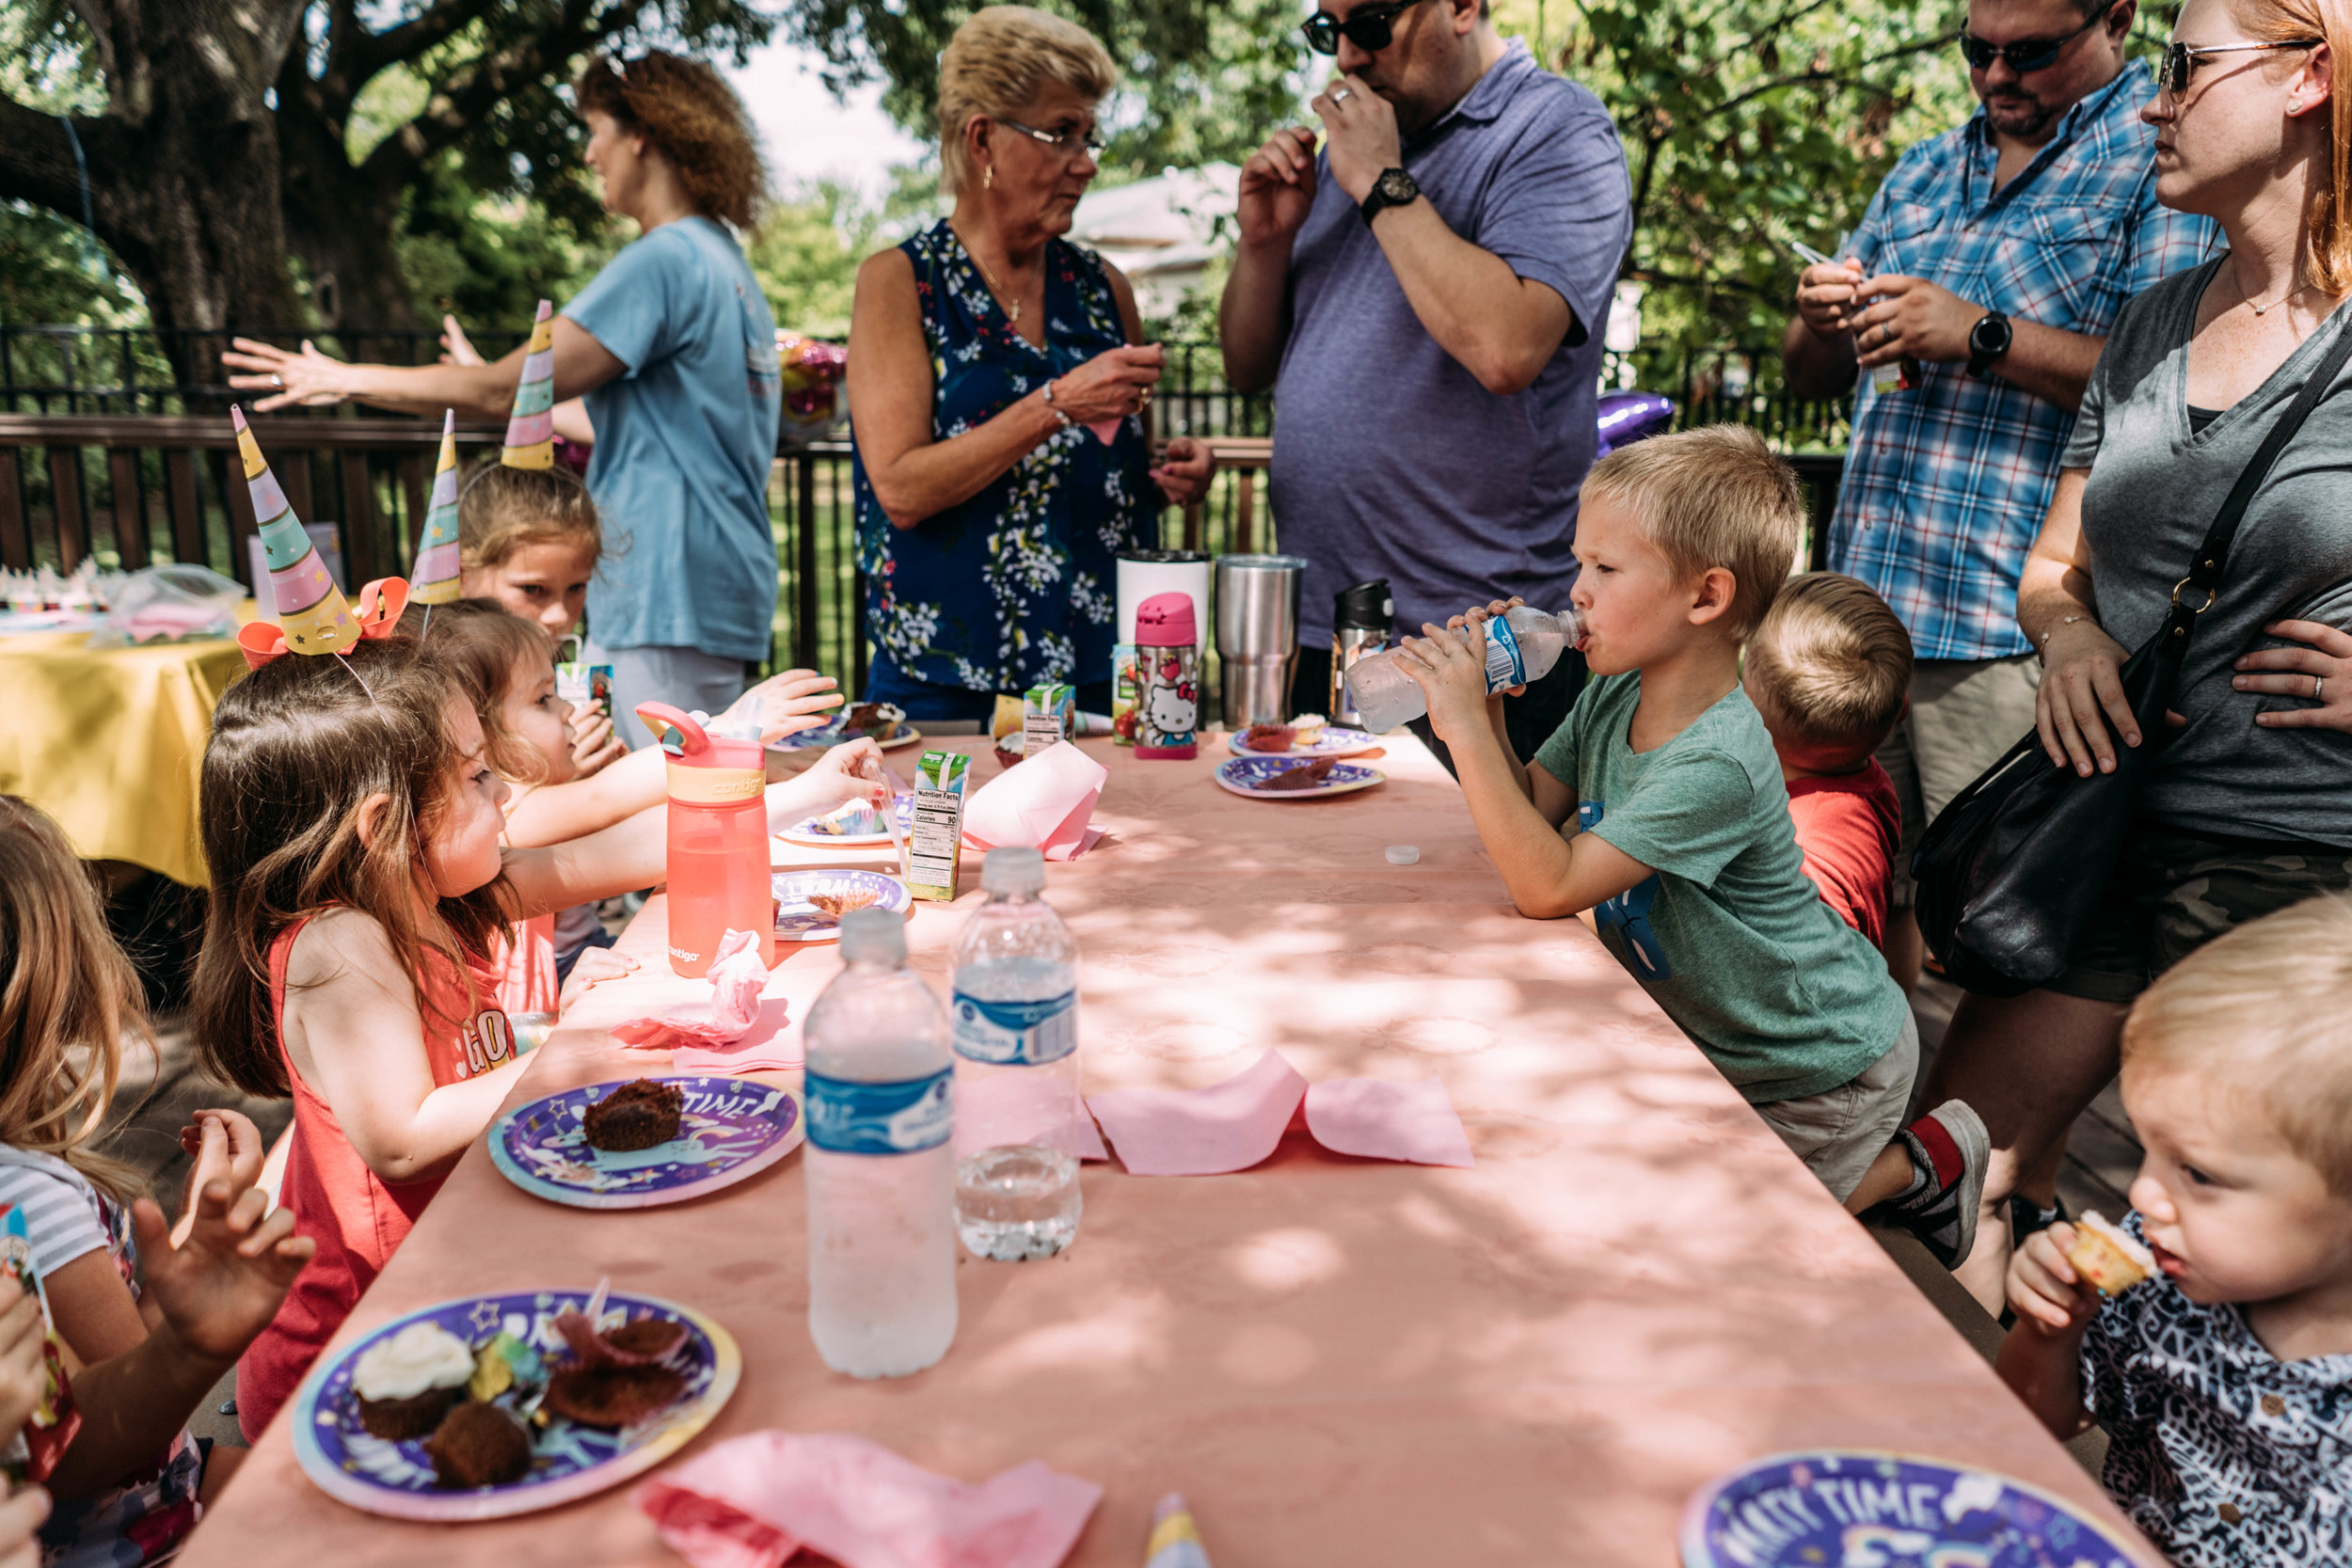 birthday party at the park-25.jpg